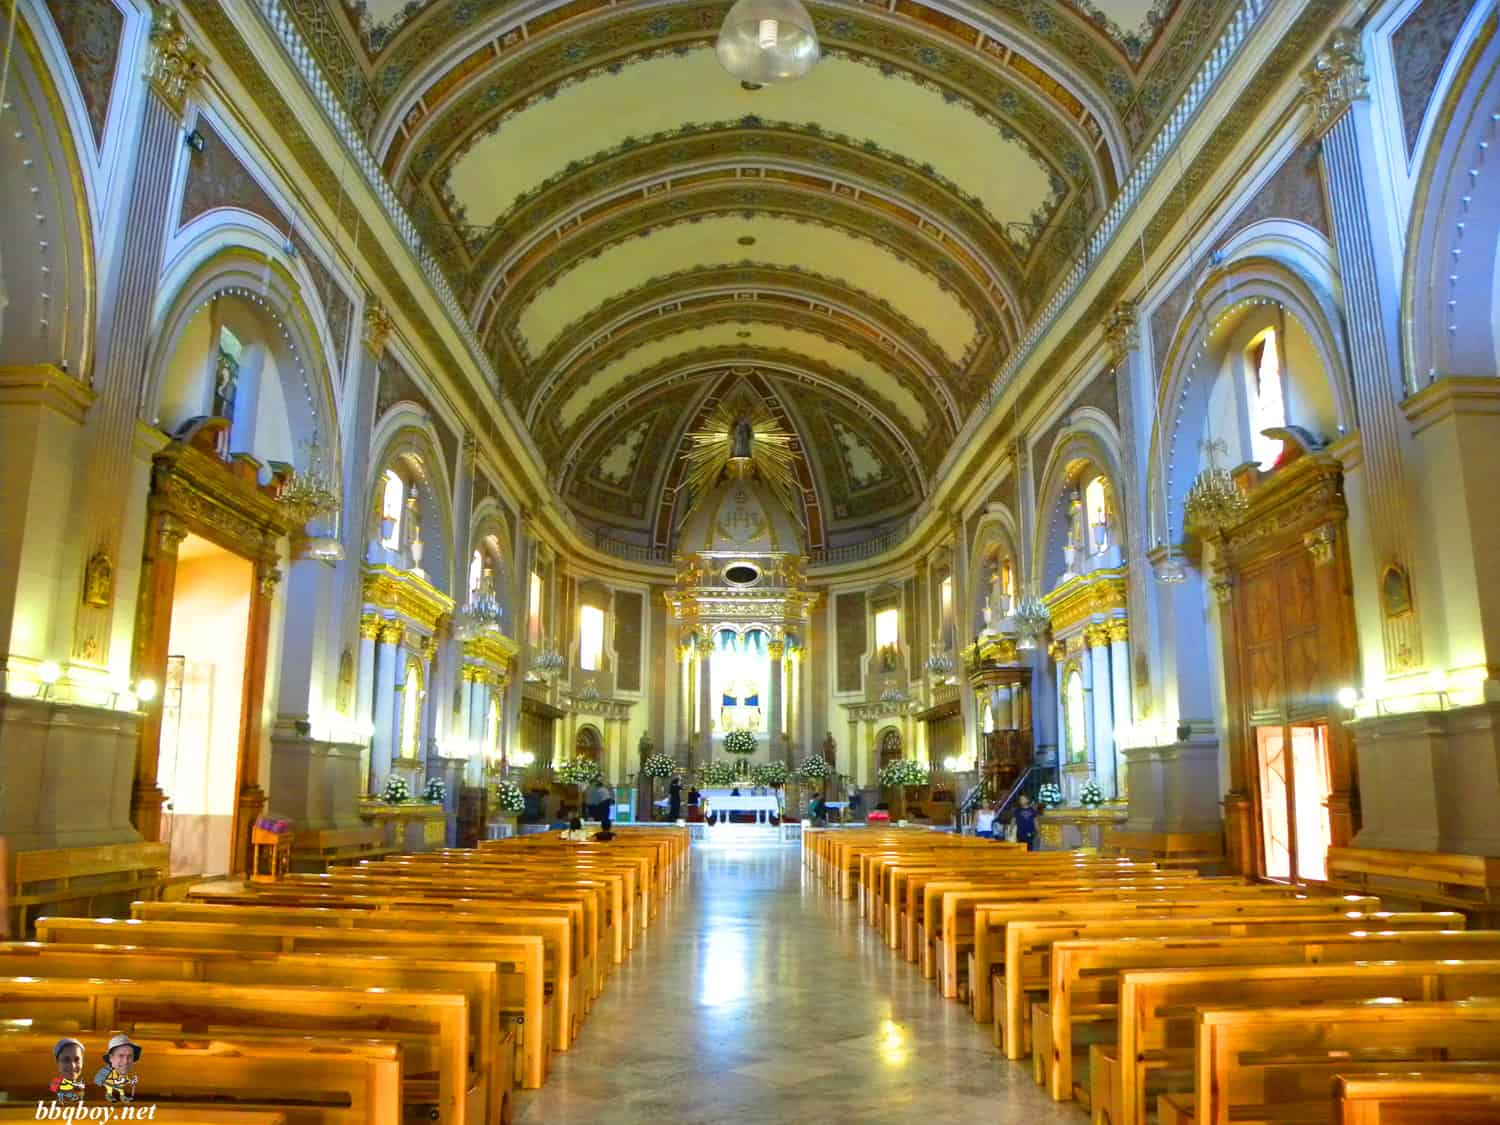 Church of Our Virgin of Health (Basilica de Nuestra Senora de la Salud) interior, Patzcuaro, Mexico